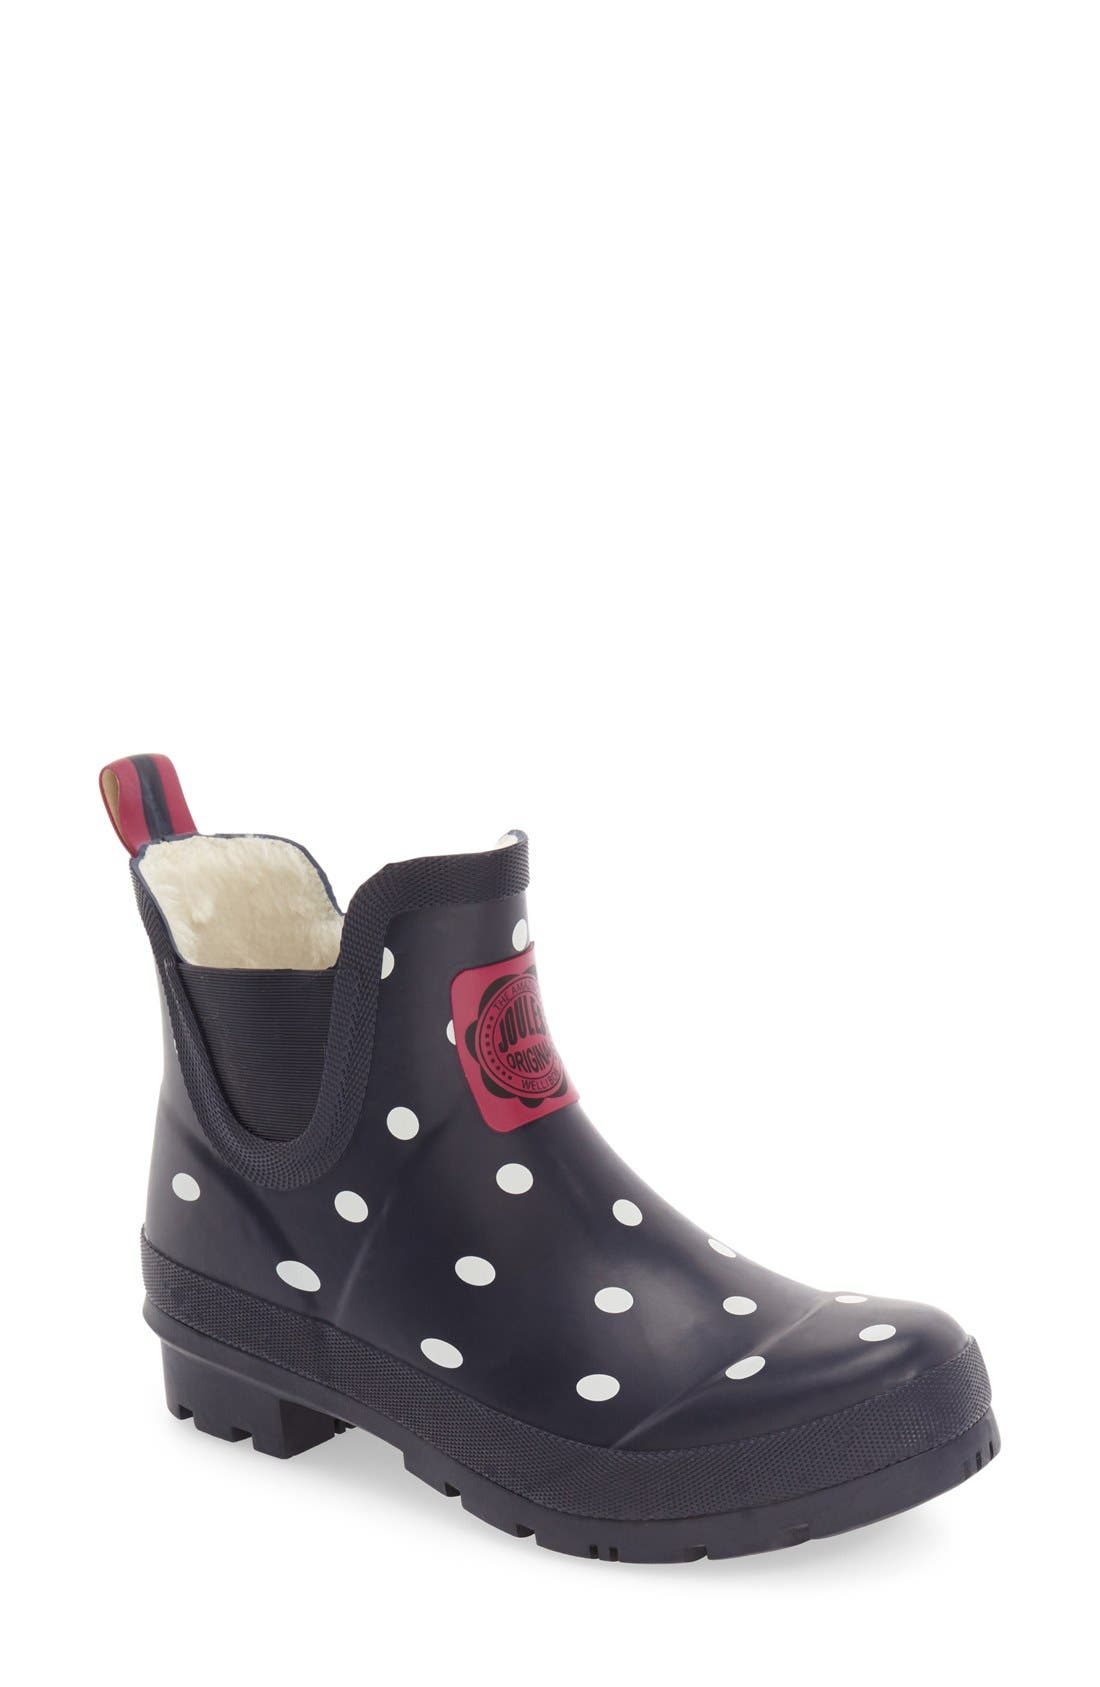 Main Image - Joules 'Wellibob' Short Rain Boot (Women)